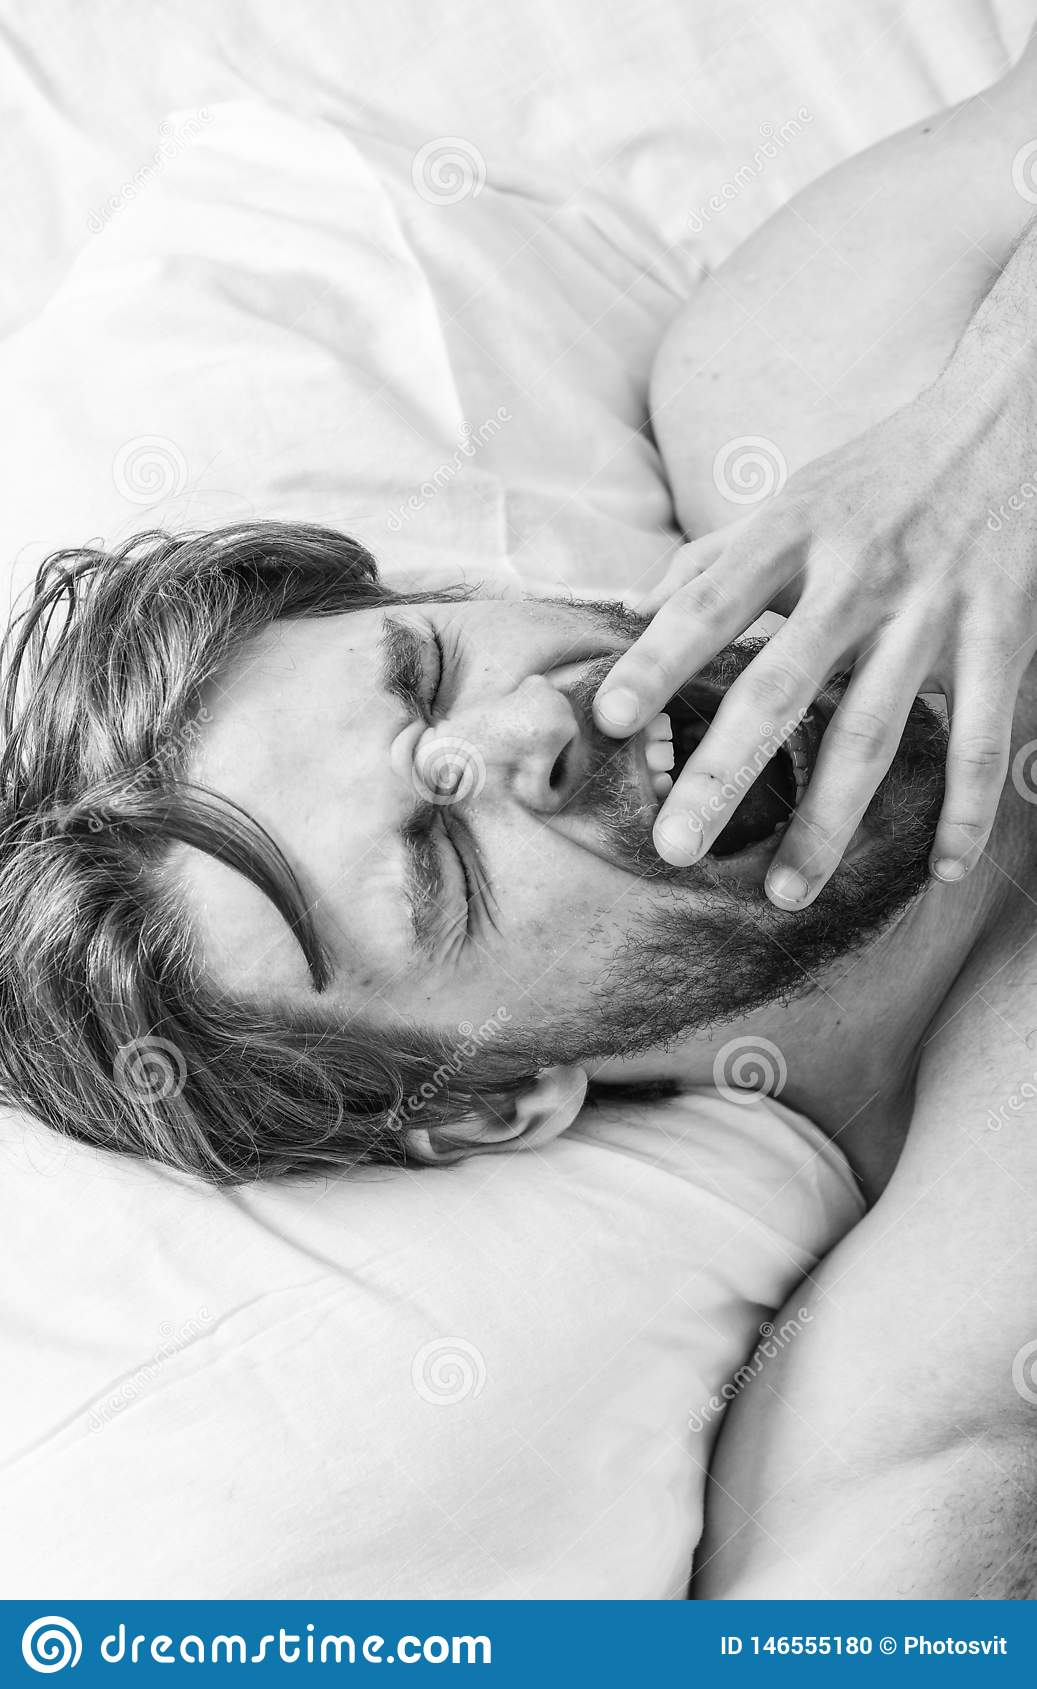 Man handsome guy lay in bed. Get adequate and consistent amount of sleep every night. How much sleep you actually need